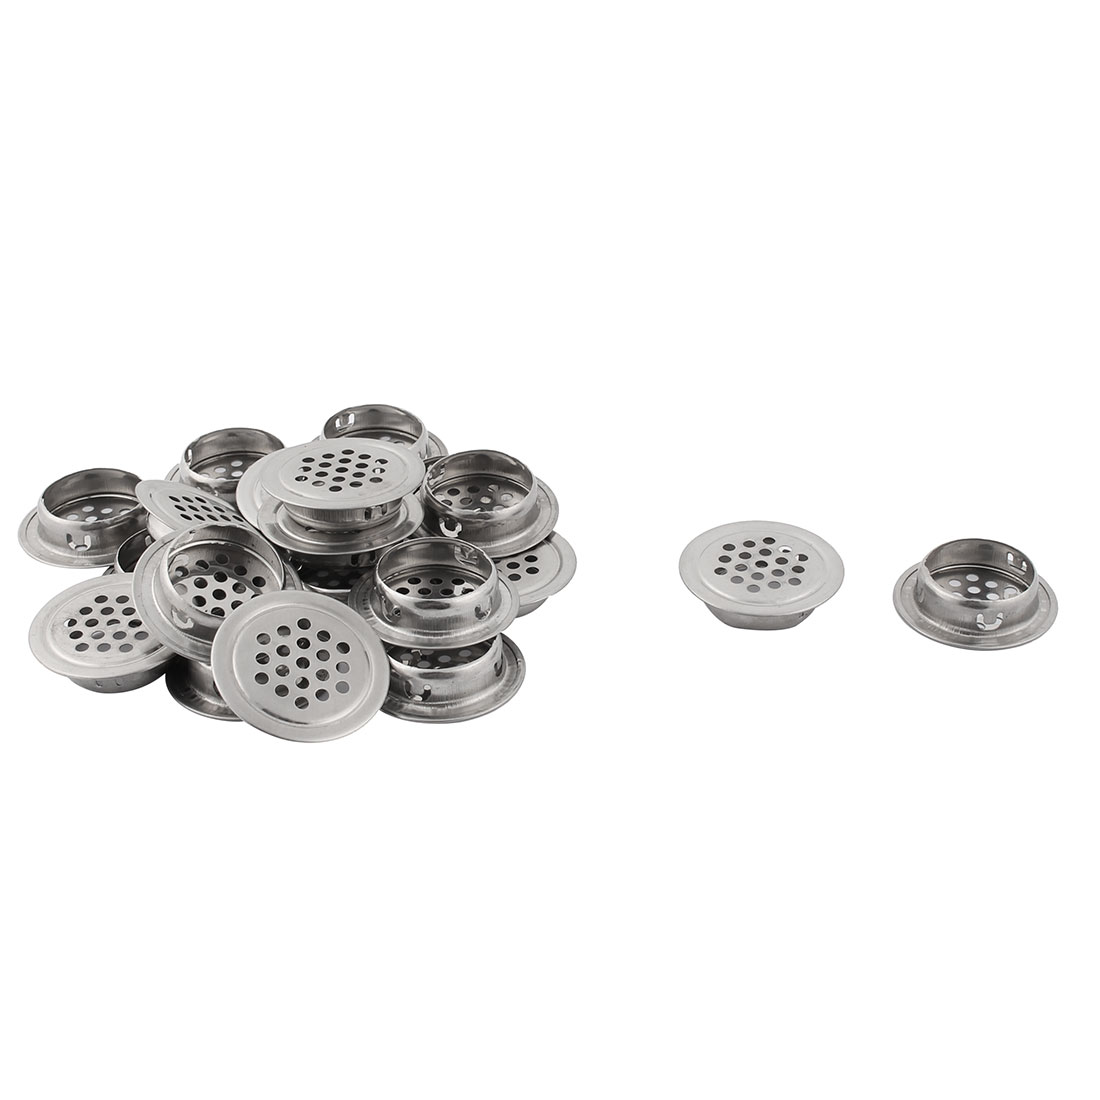 Kitchen Bathroom Stainless Steel Furniture Perforated Mesh Air Vents 29mm Dia 15pcs